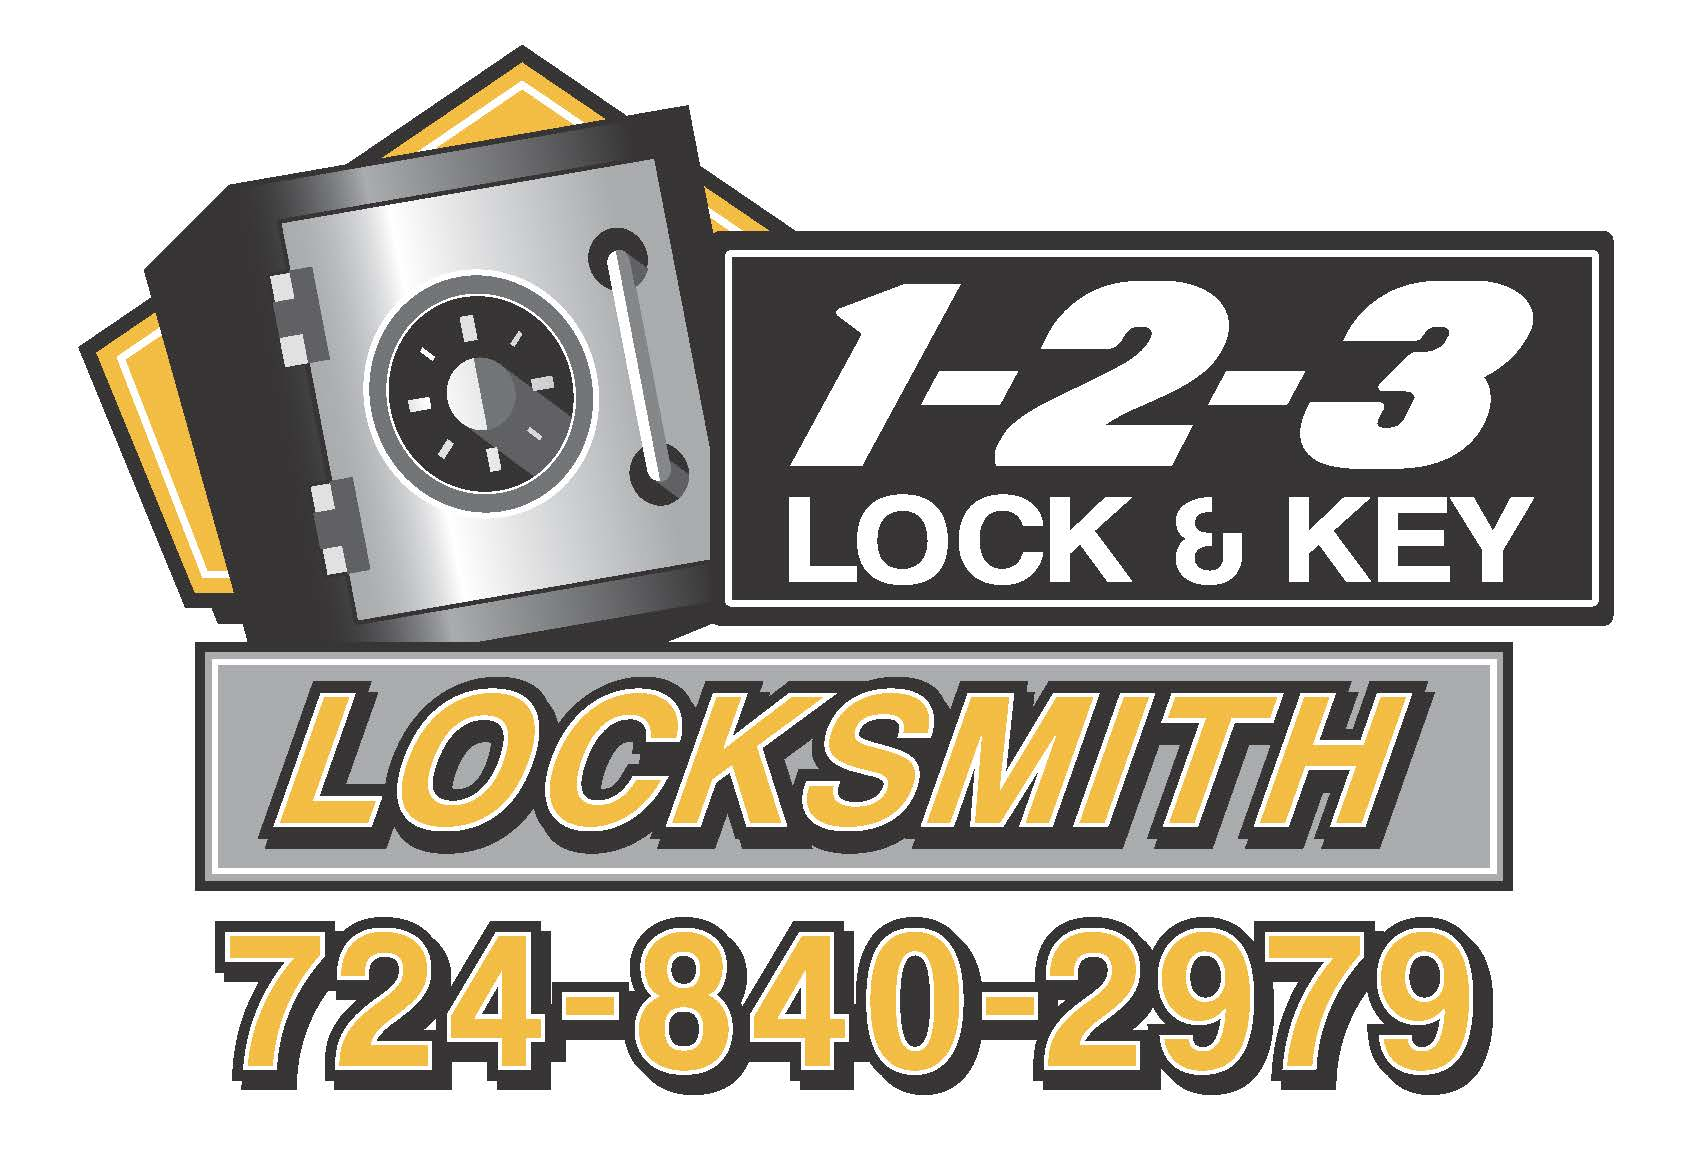 1-2-3 Lock and Key